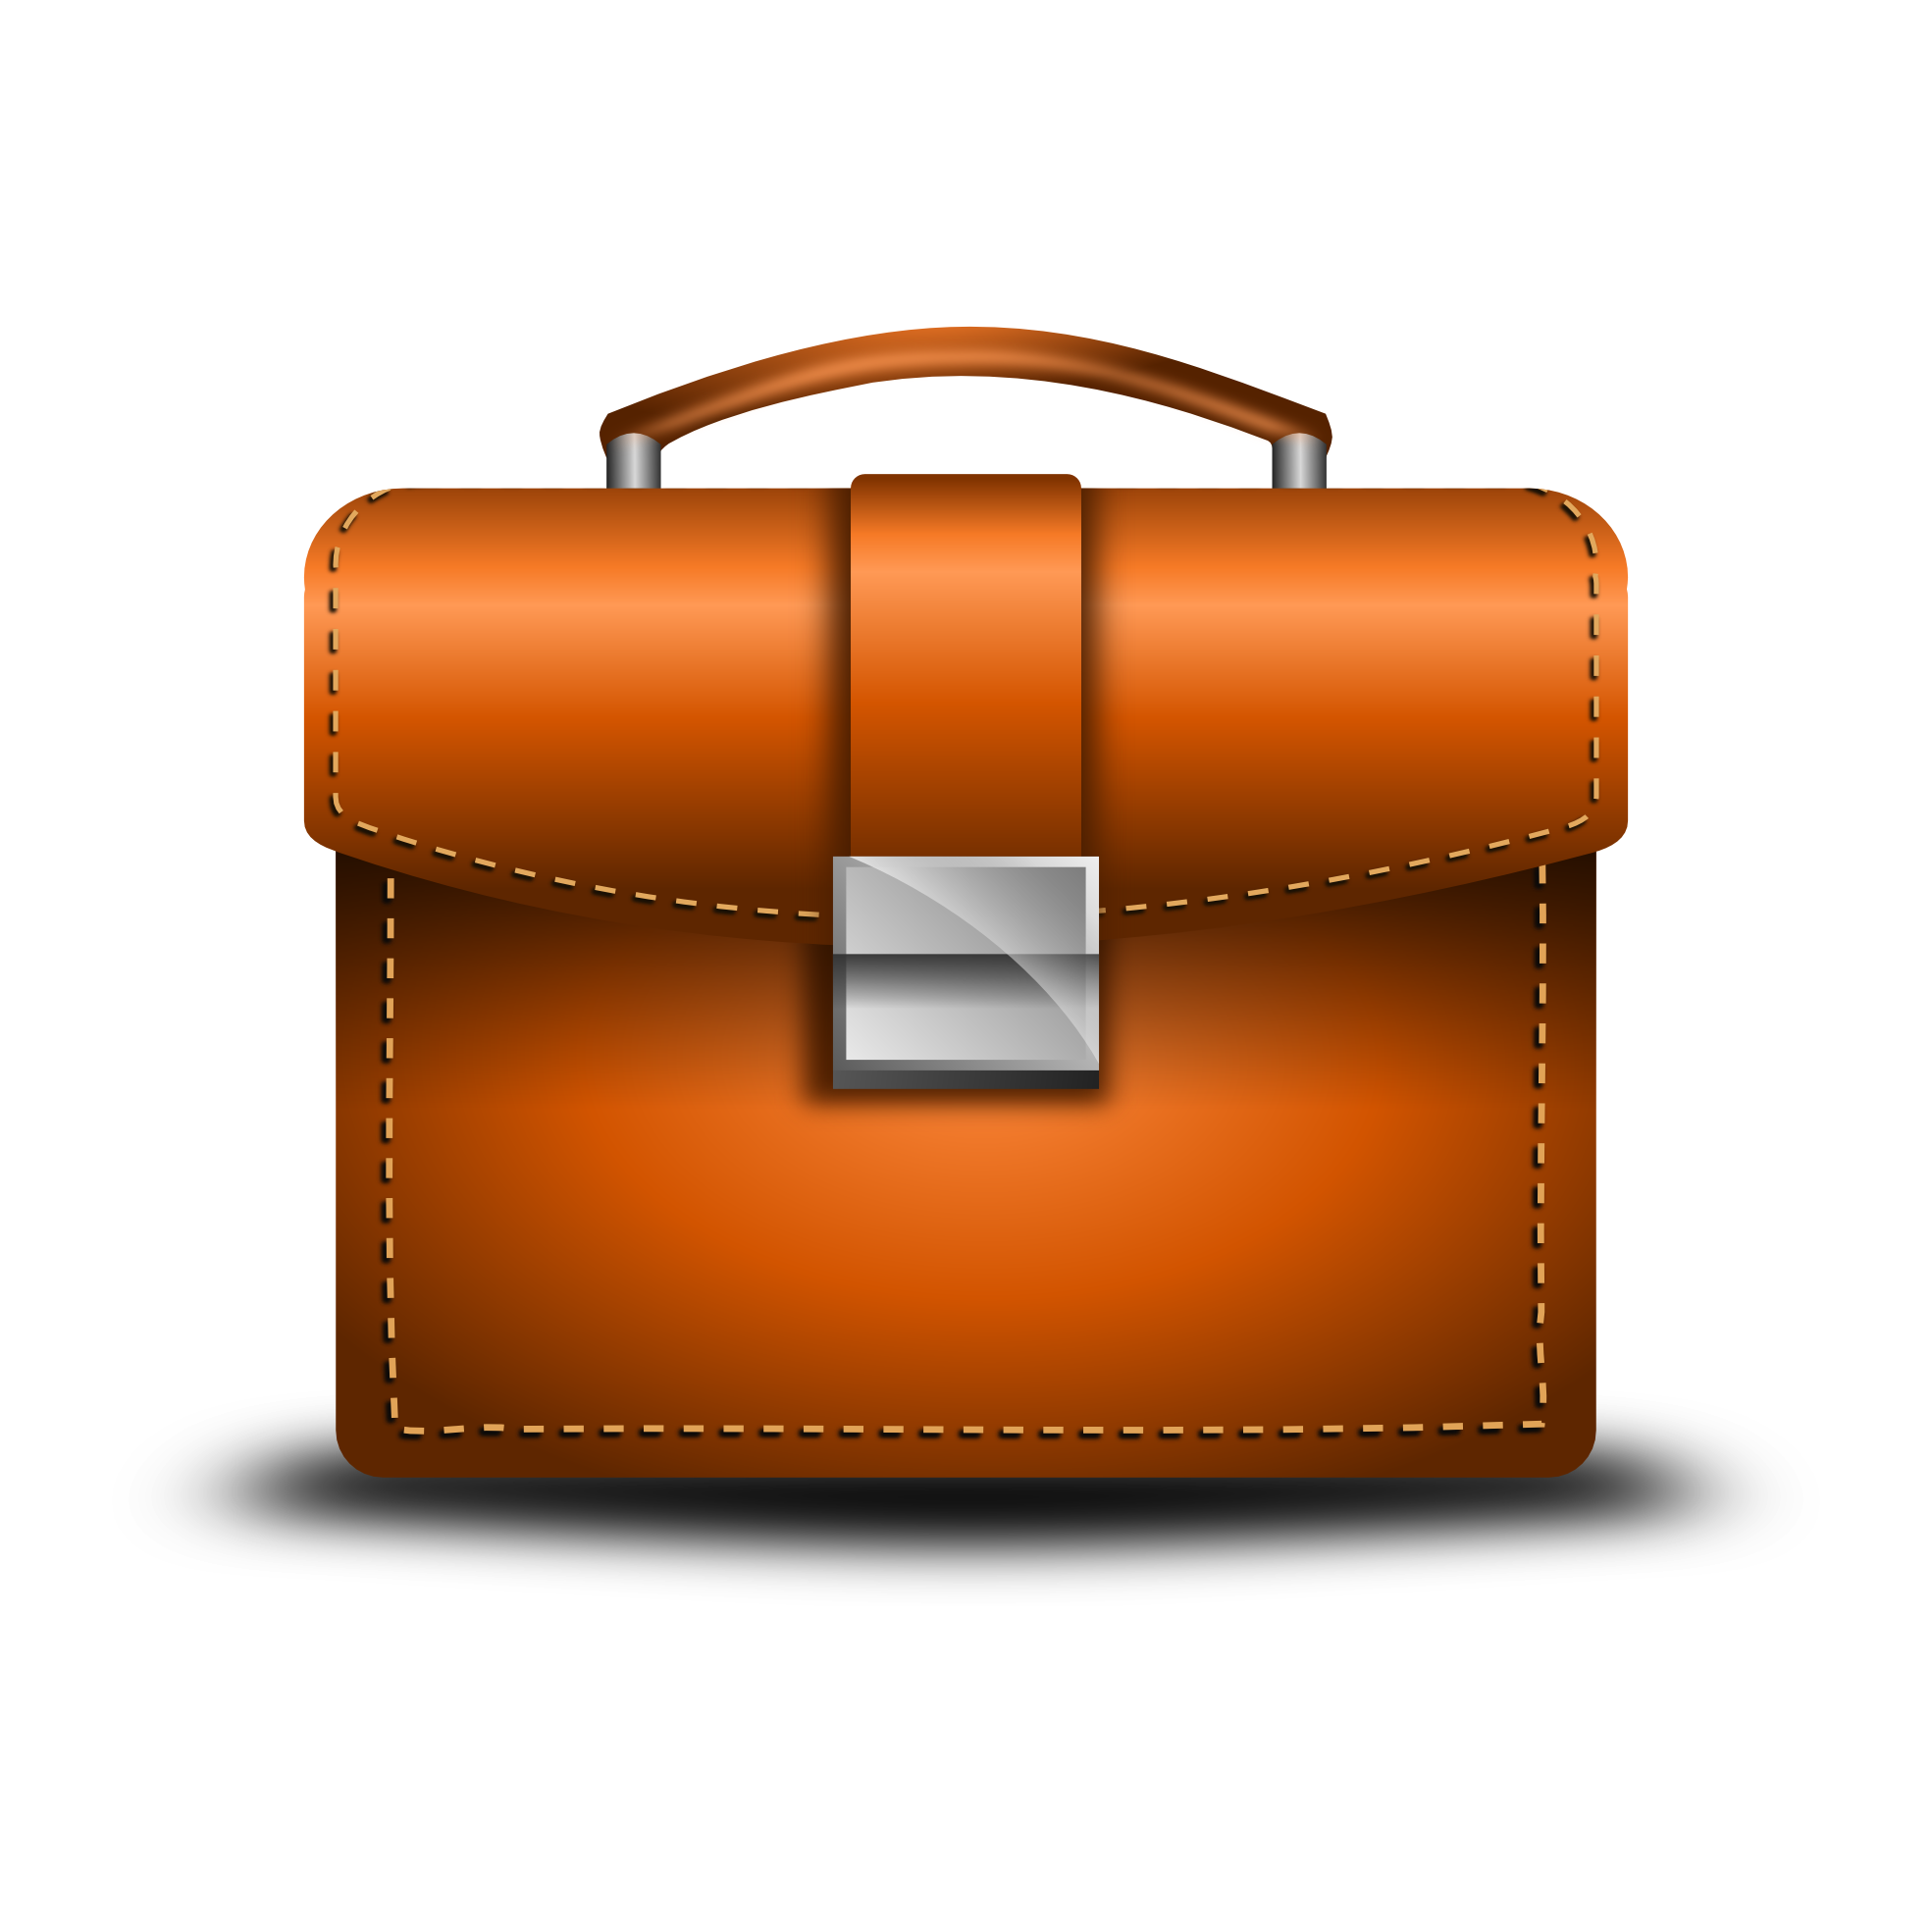 Briefcase - Briefcase HD PNG